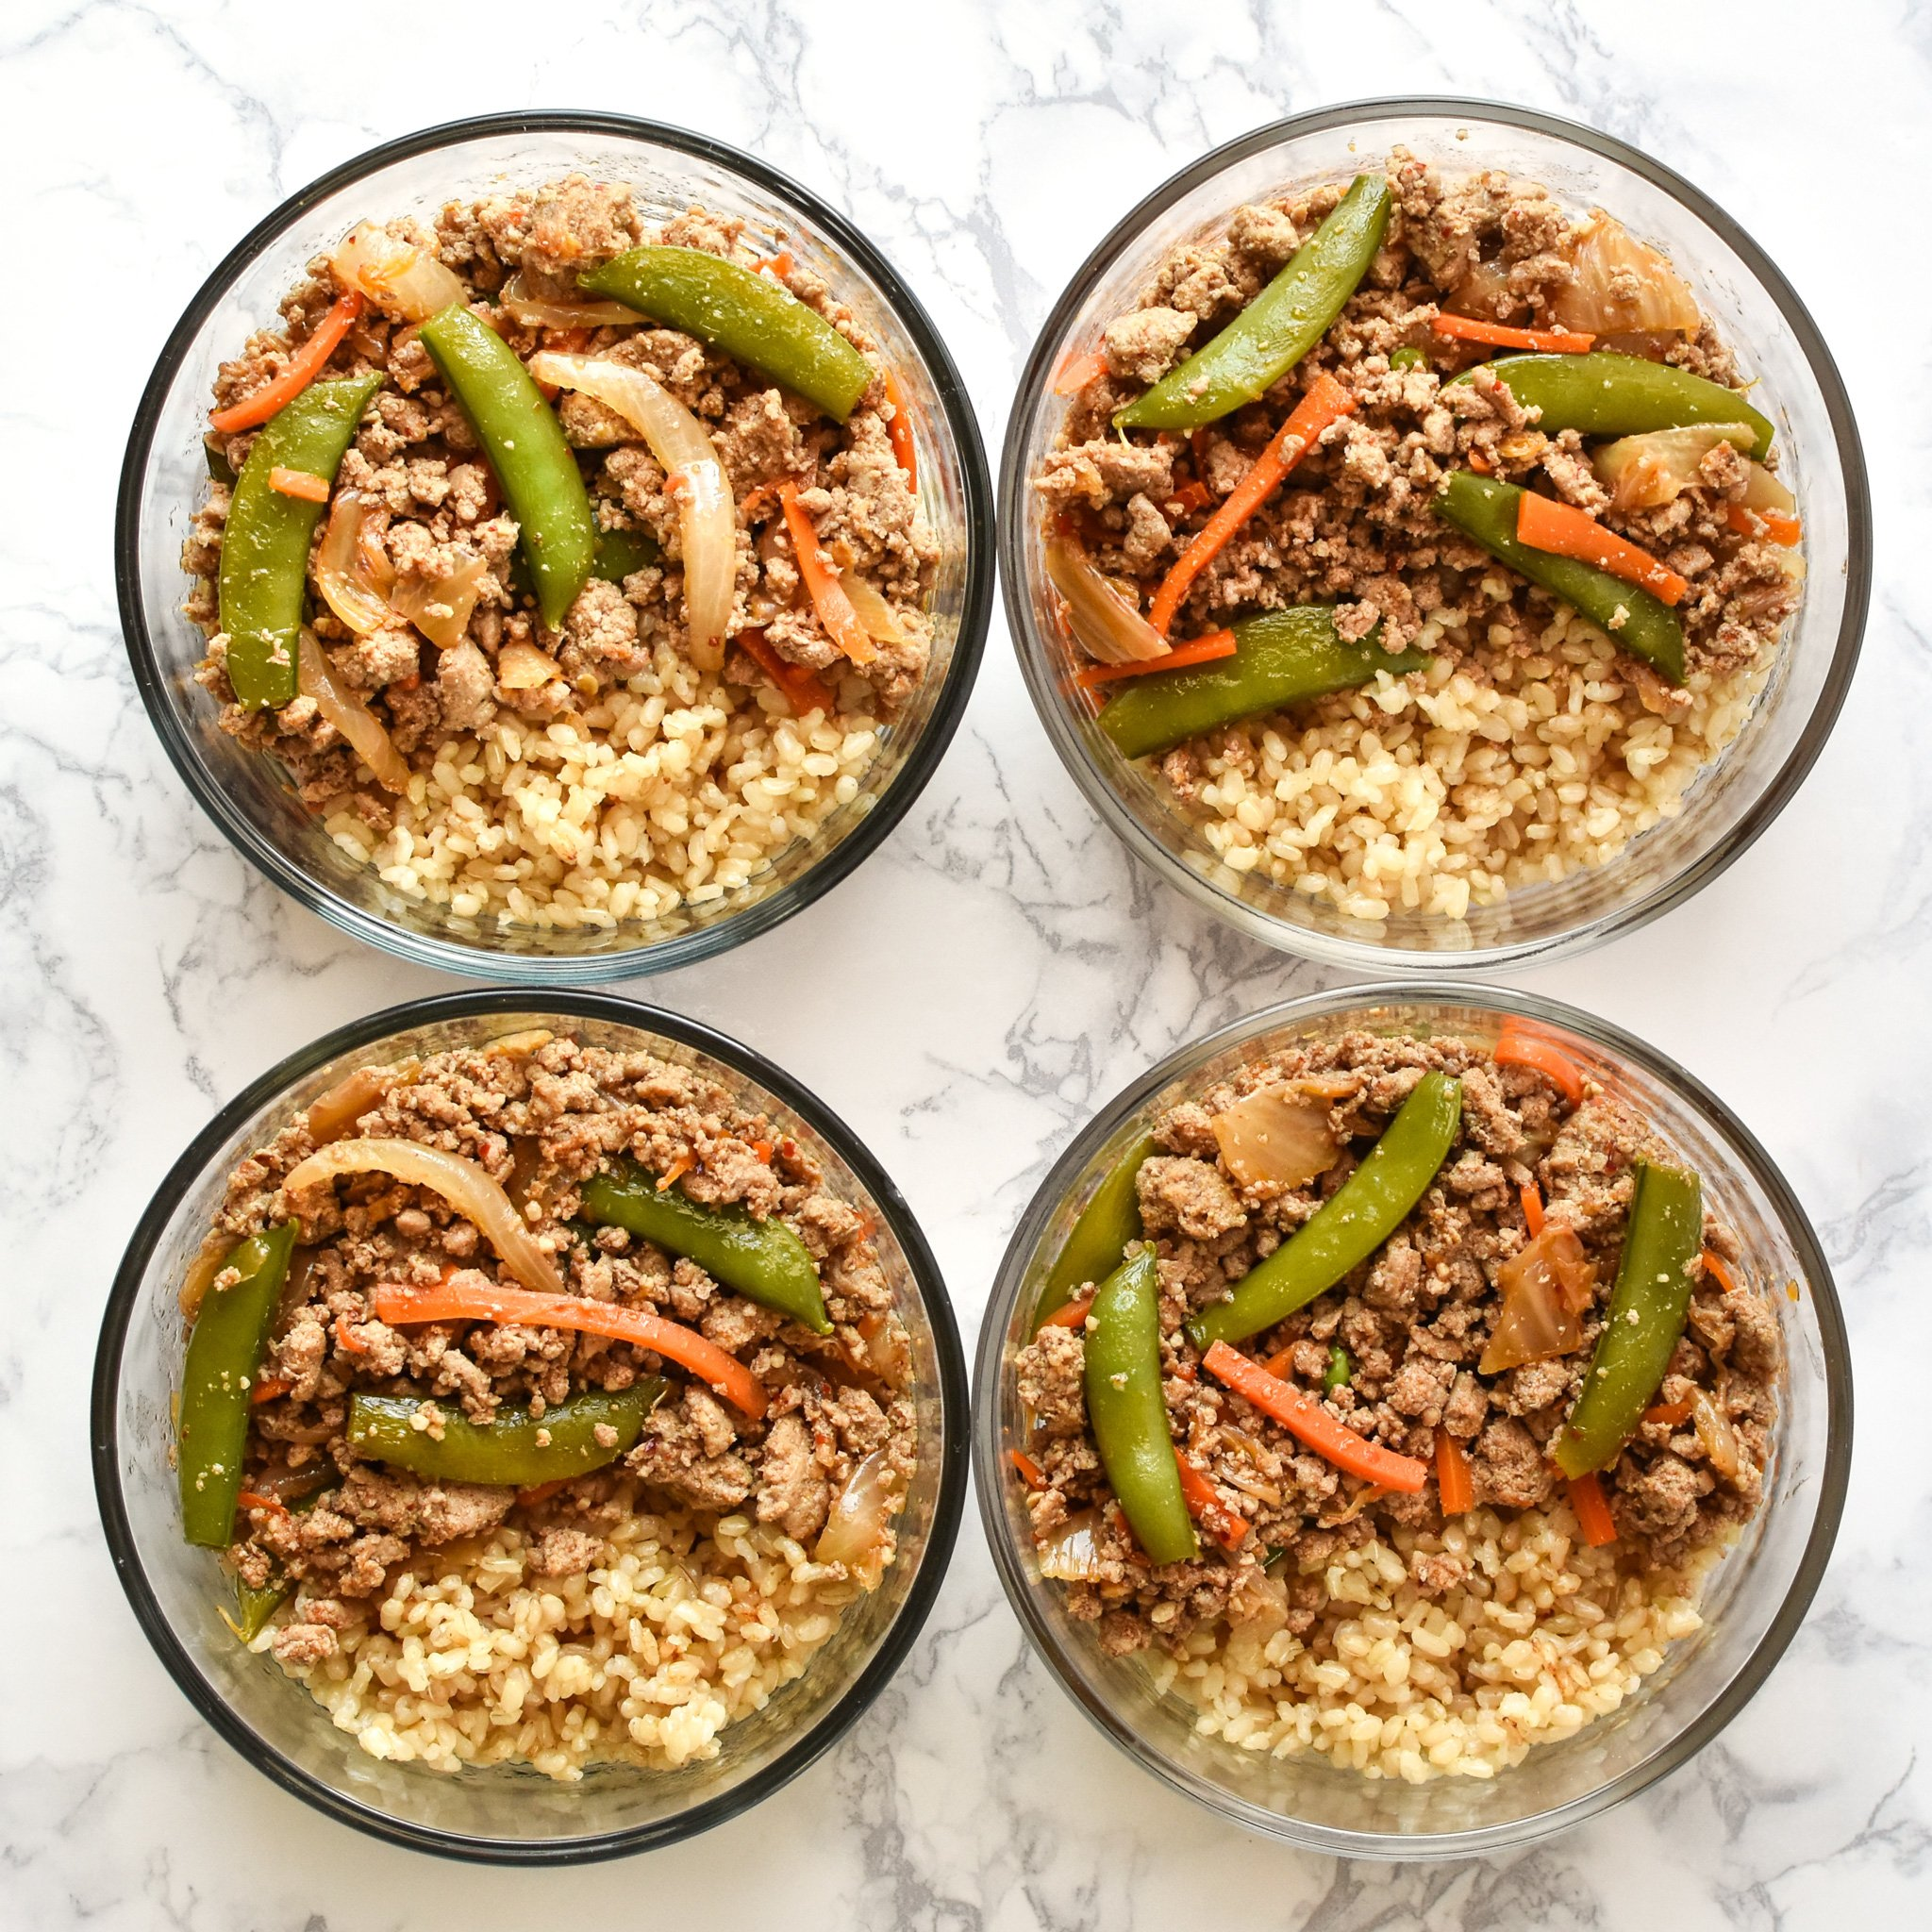 Ground turkey snap pea rice bowl meal prep in round pyrex meal prep containers.